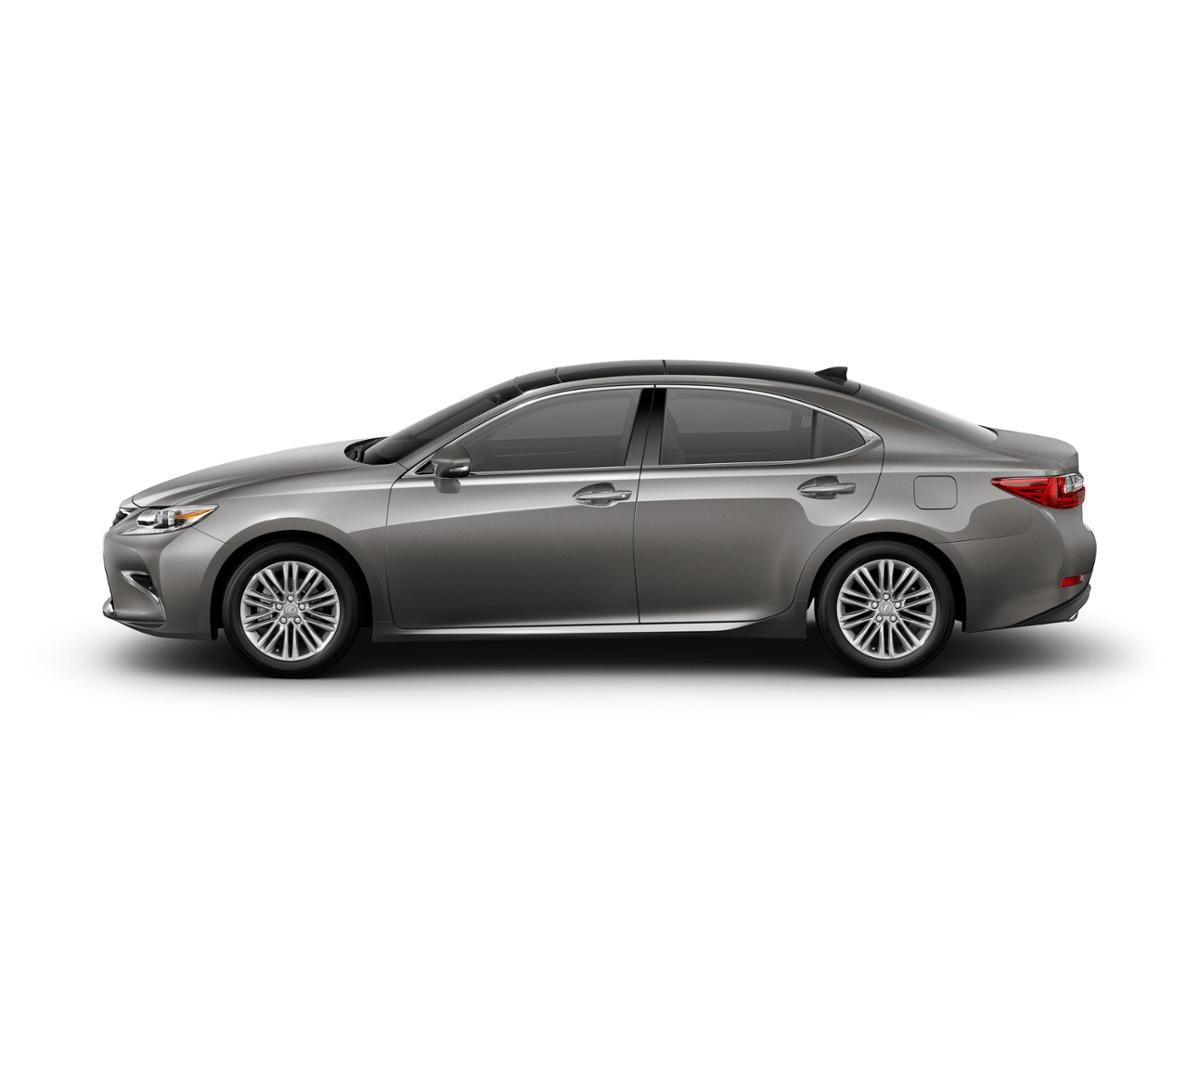 Used Lexus Is350: Modesto Atomic Silver 2017 Lexus ES 350: New Car For Sale